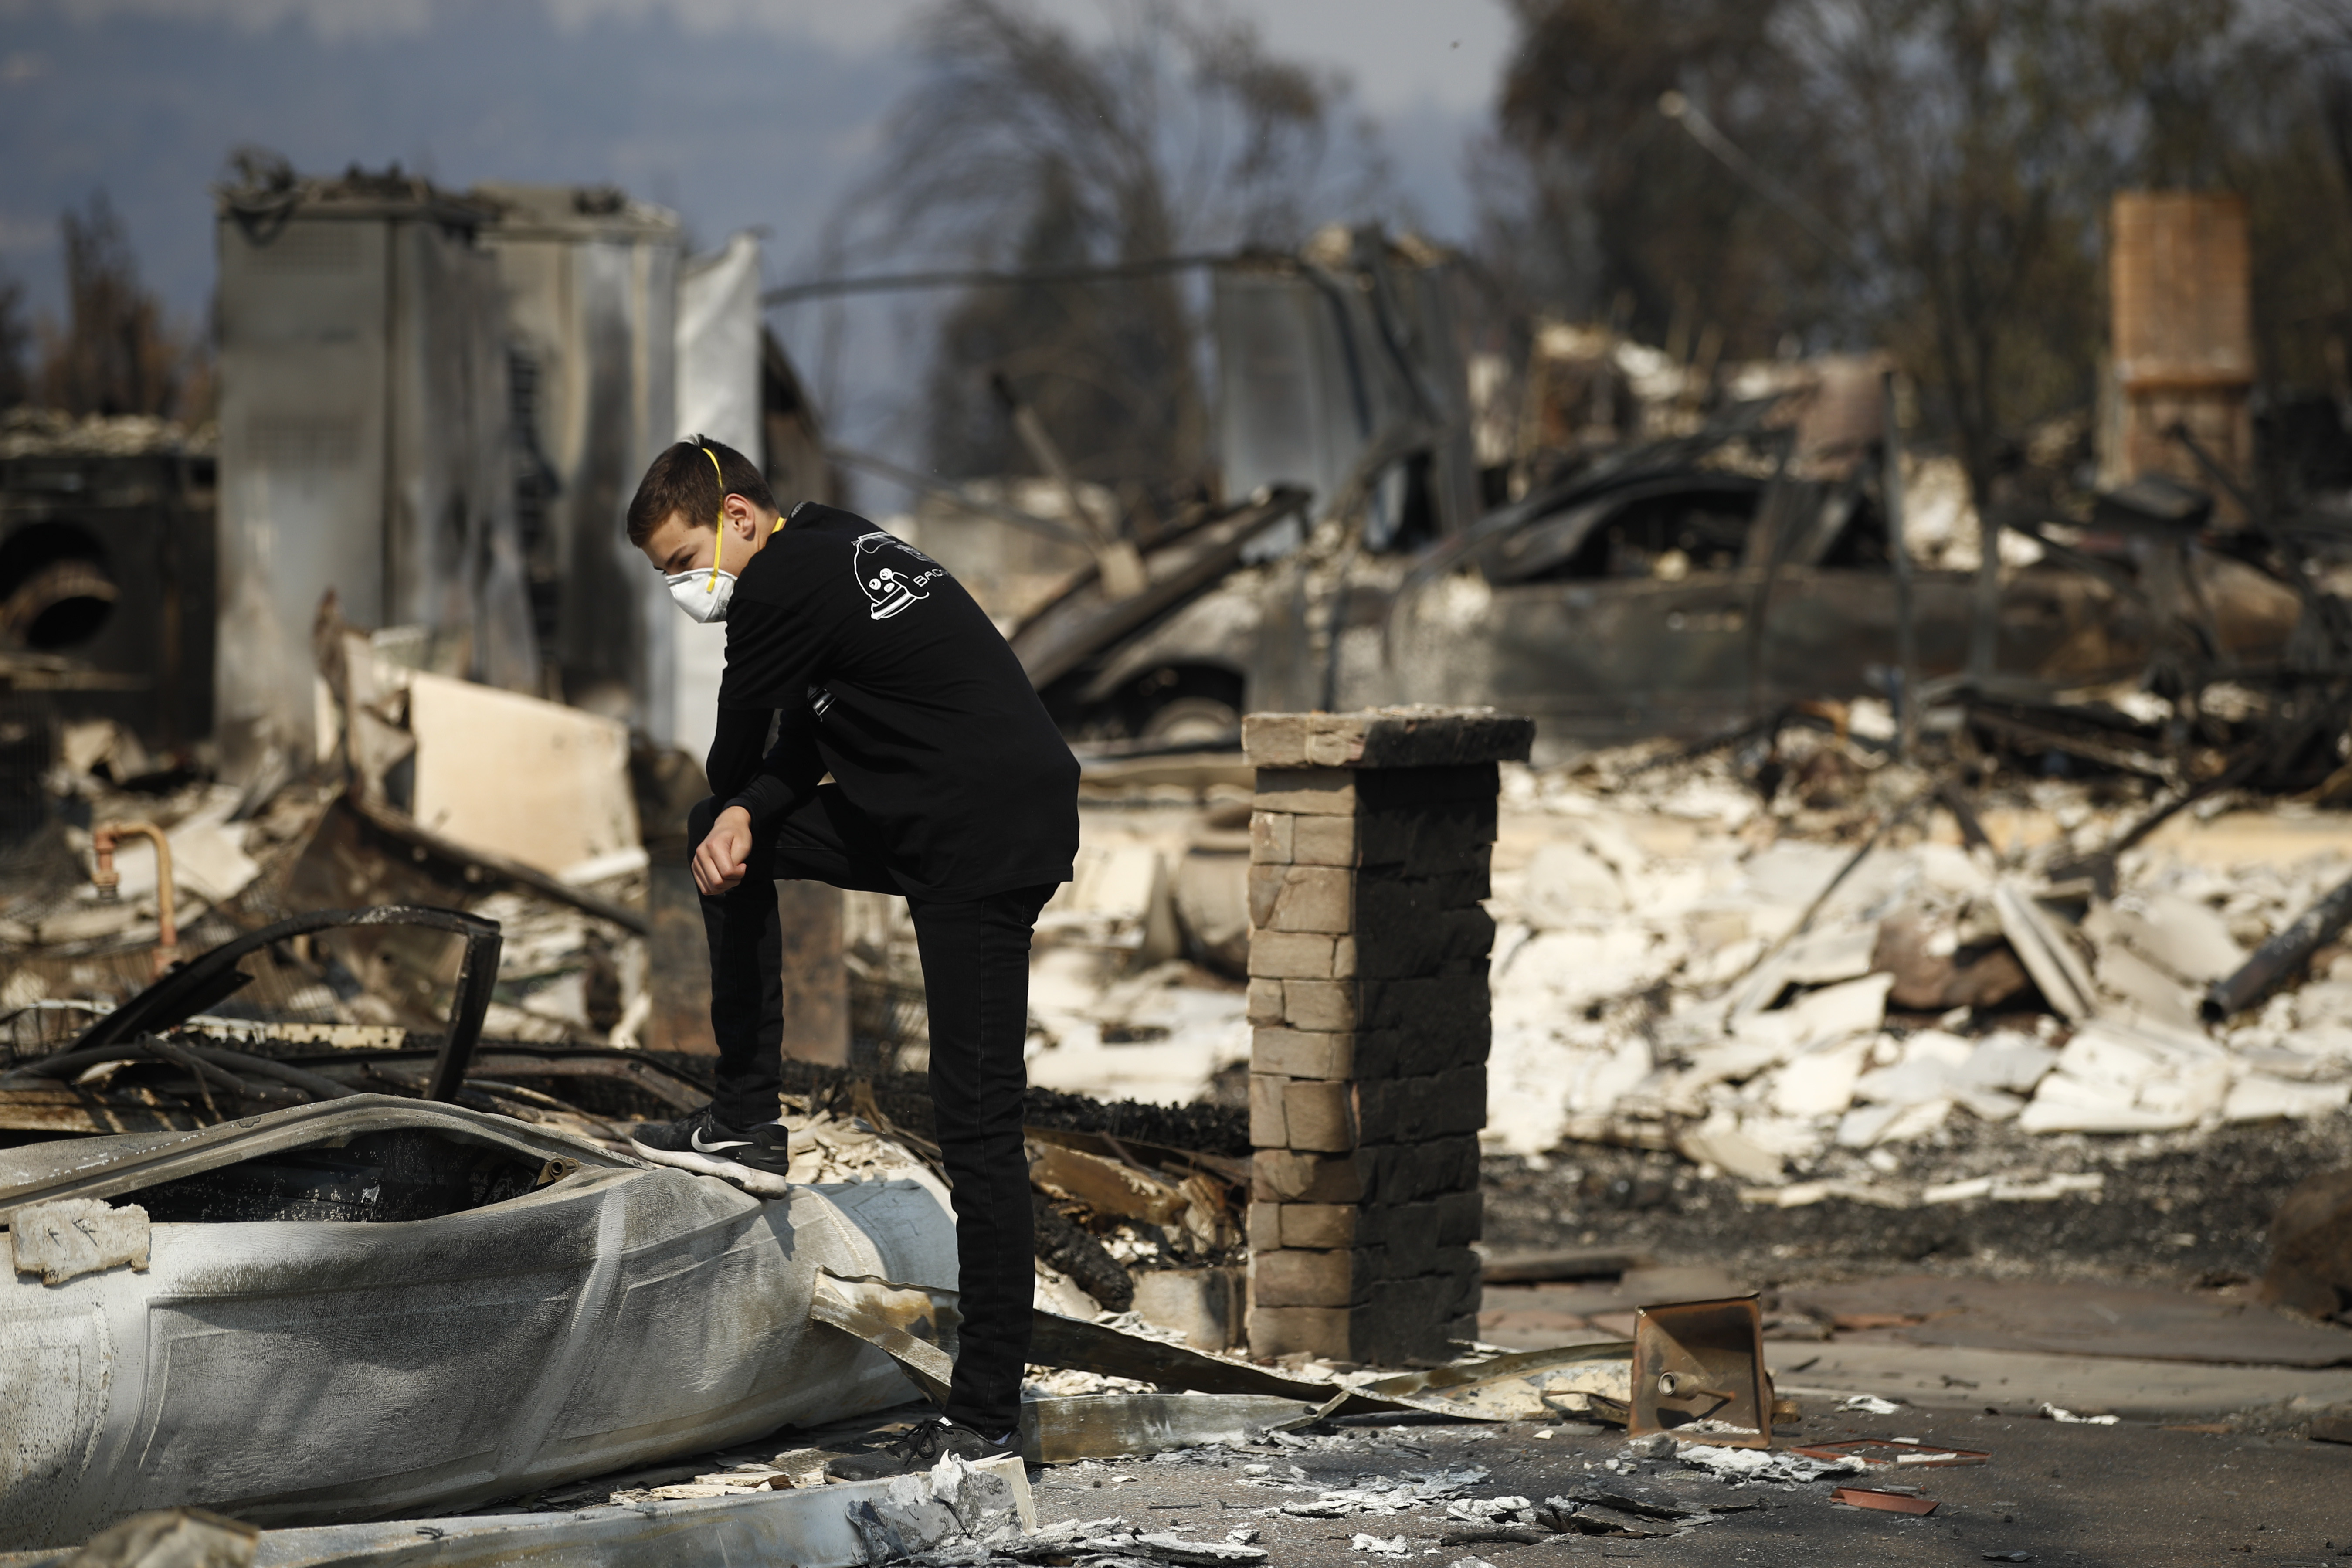 <div class='meta'><div class='origin-logo' data-origin='none'></div><span class='caption-text' data-credit='Jae C. Hong/AP Photo'>Benjamin Lasker, 16, pauses while looking at what remains of his home after a wildfire swept through Sunday, Oct. 15, 2017, in Santa Rosa, Calif.</span></div>